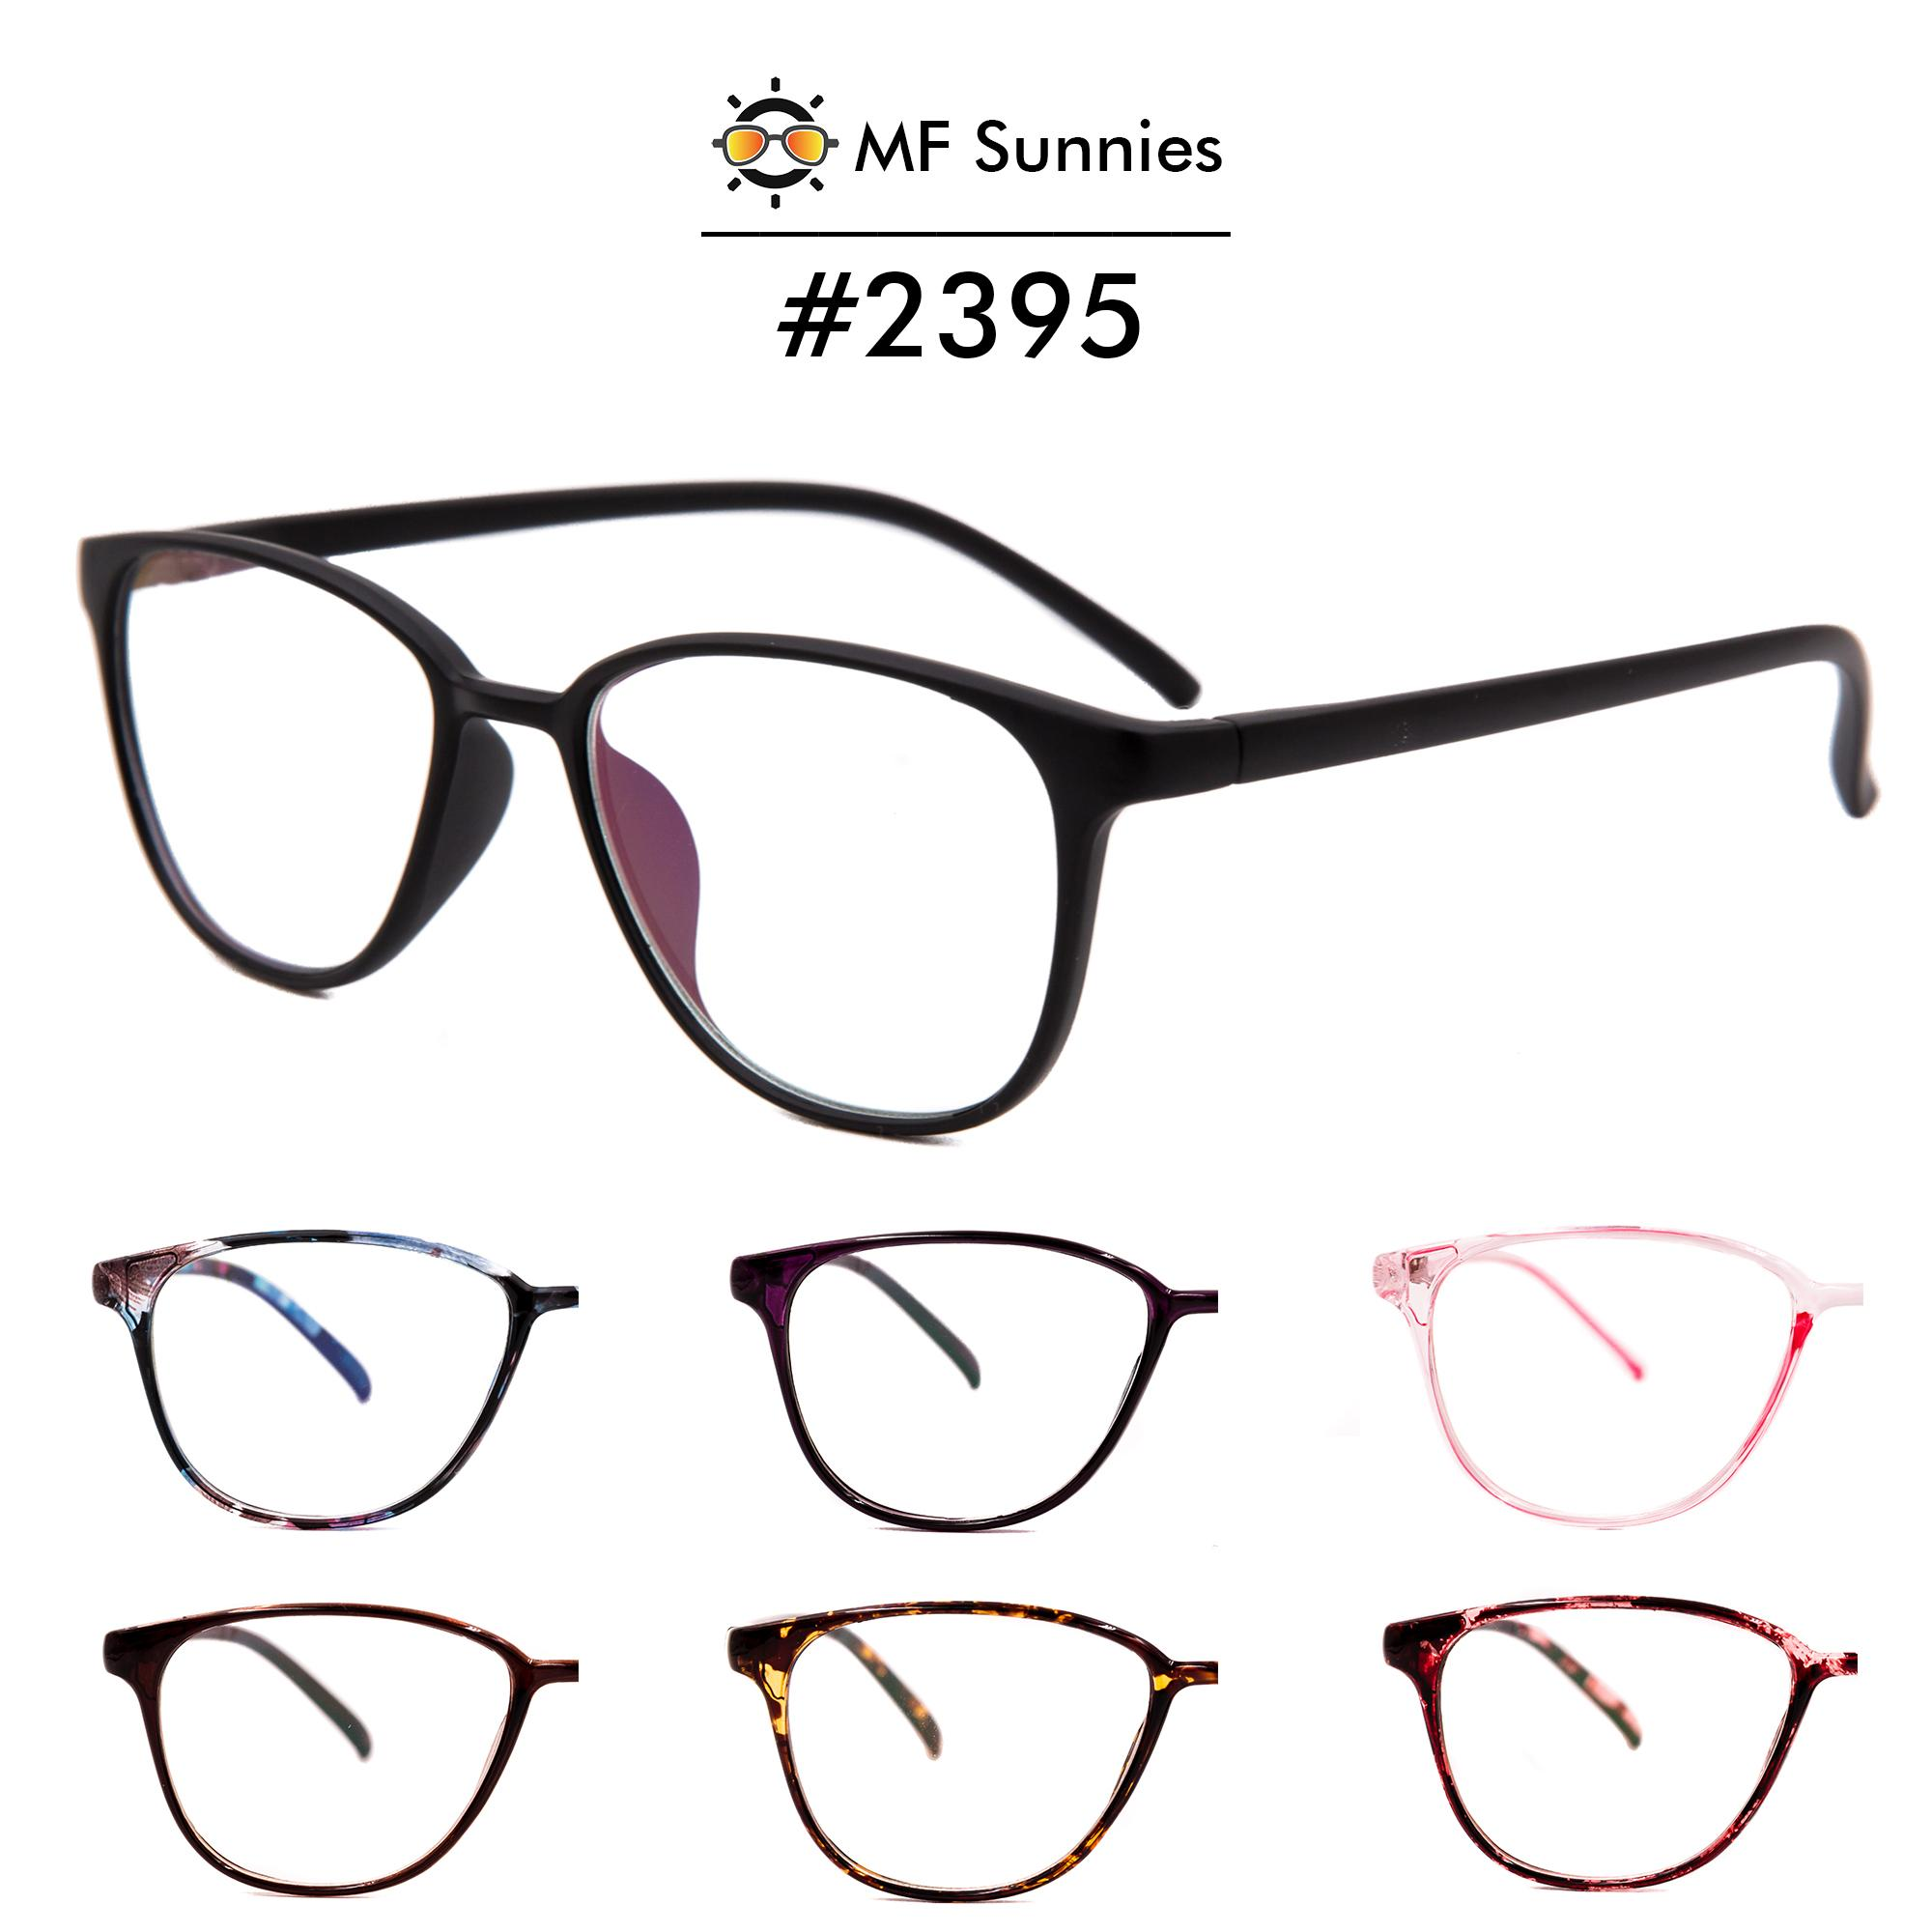 8bdade2f5145 MFSunnies Computer Anti Blue light Radiation Eyewear High quality frame  Premium Acetate material Metal Hinges